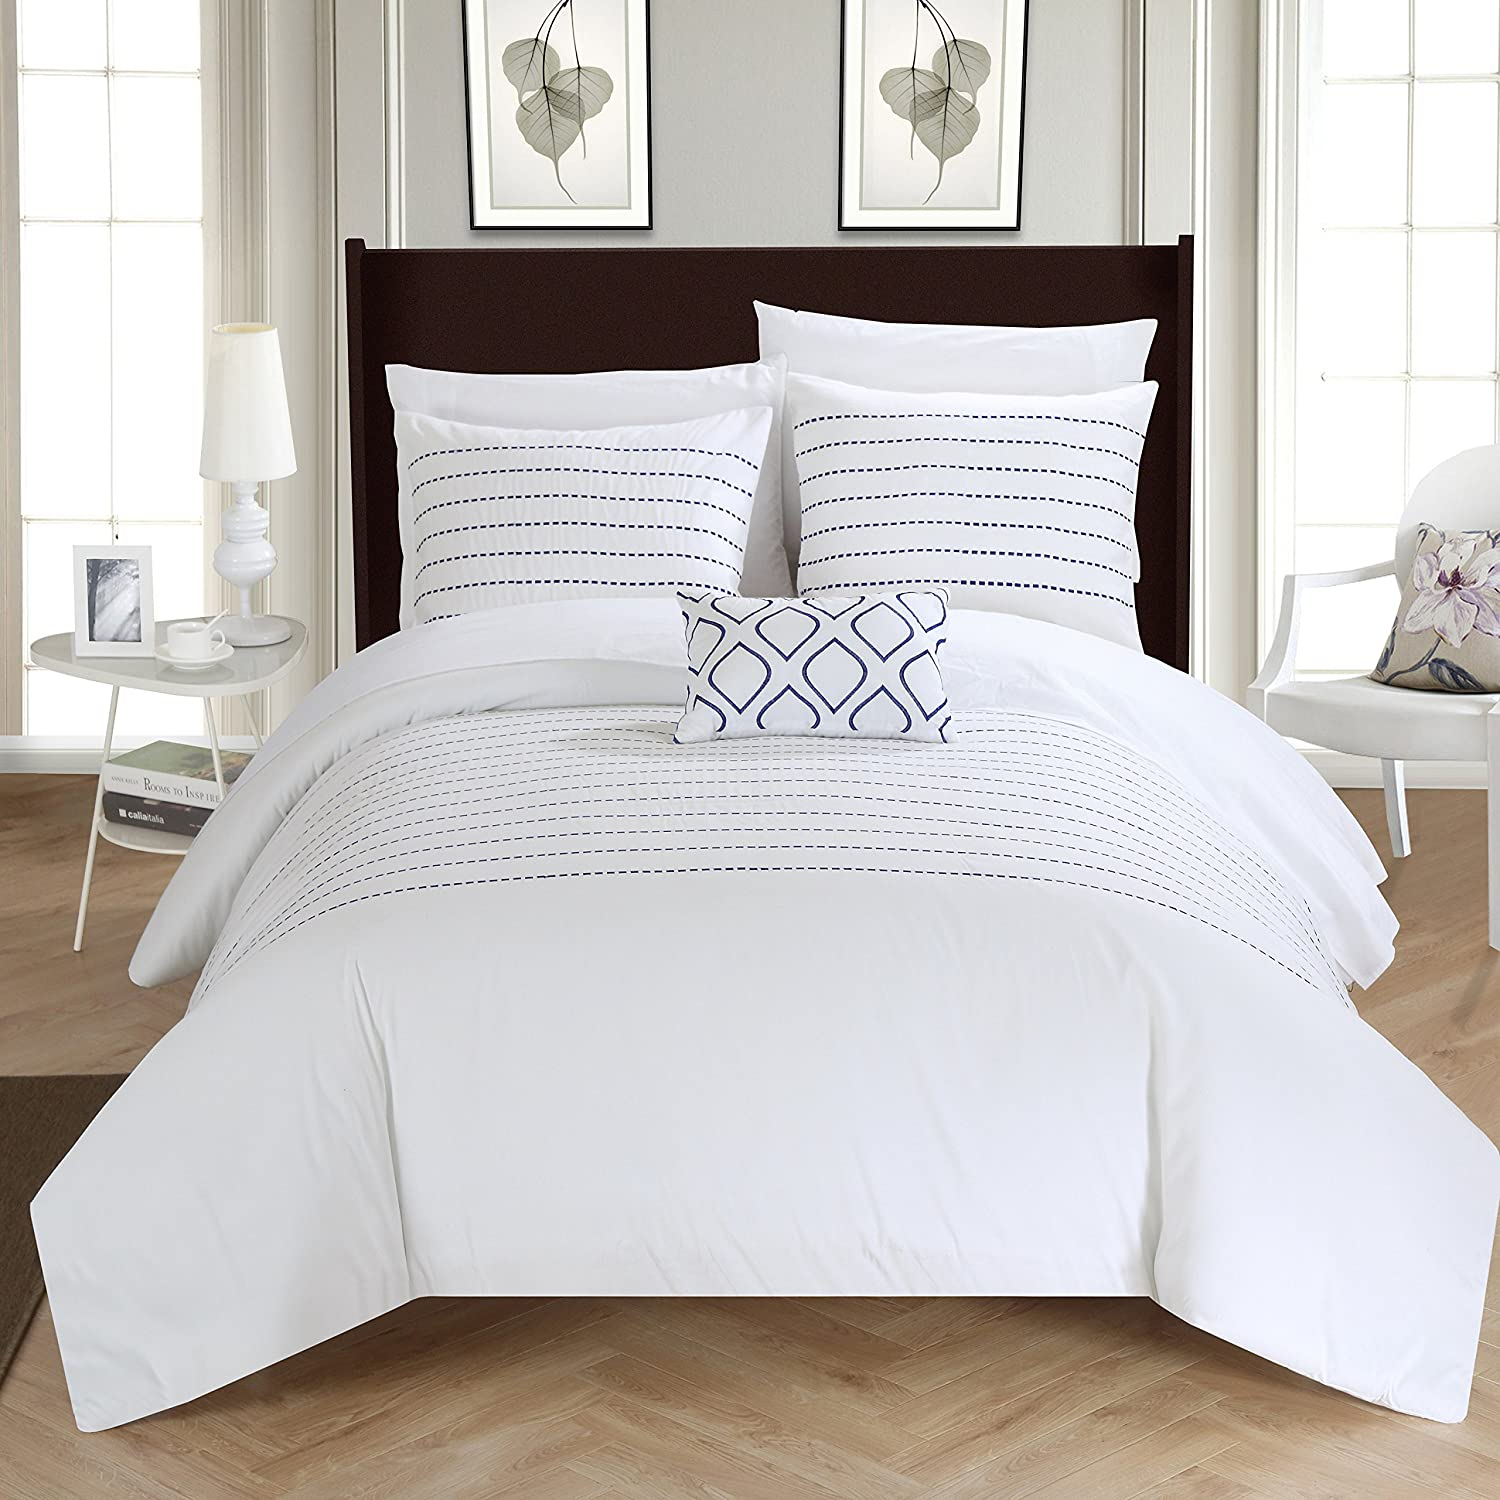 Chic Home 4 Piece Bea Embroidered Duvet Cover Set Shams and Decorative Pillow, Queen, White